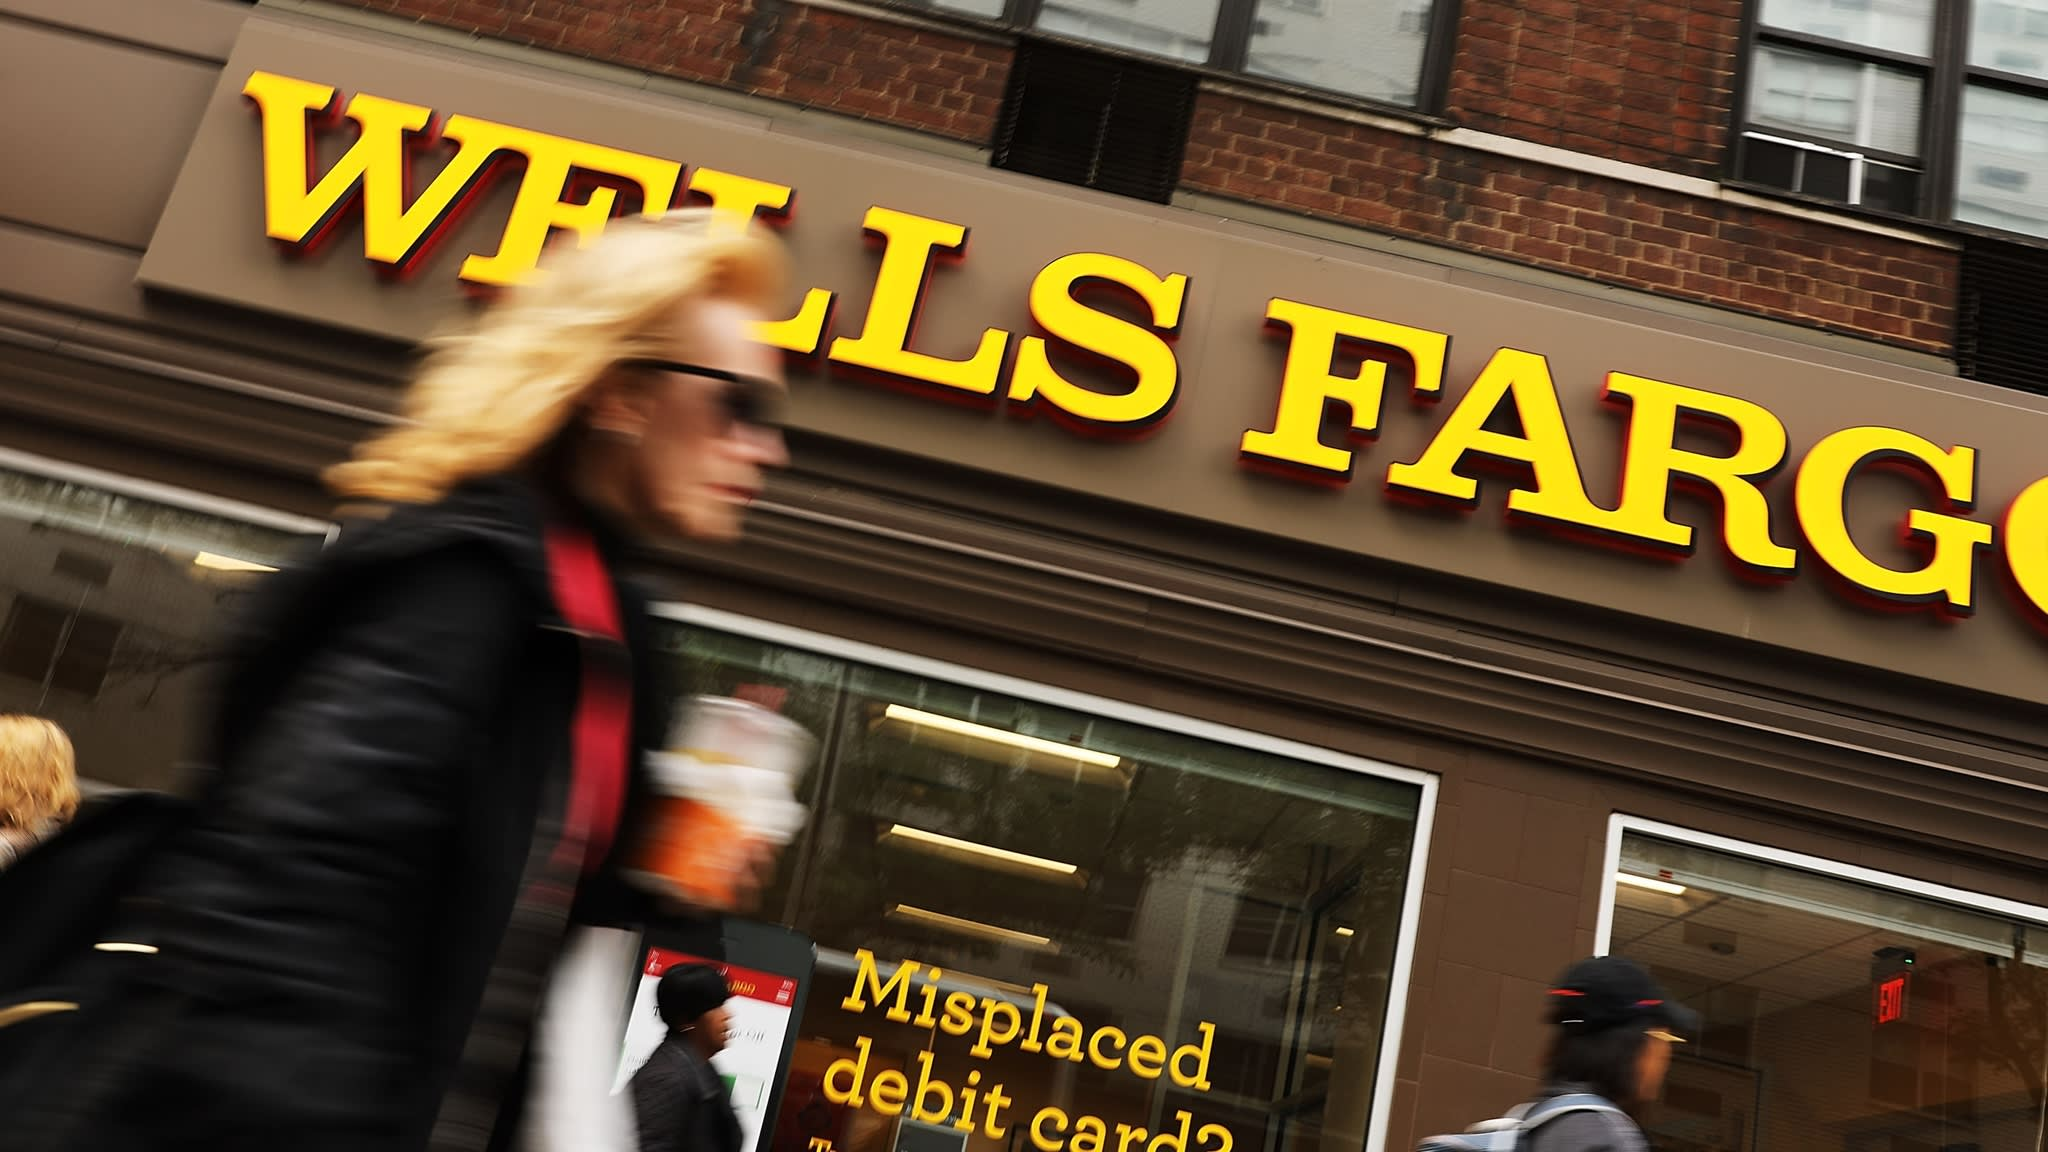 Wells Fargo to cut workforce by up to 10%